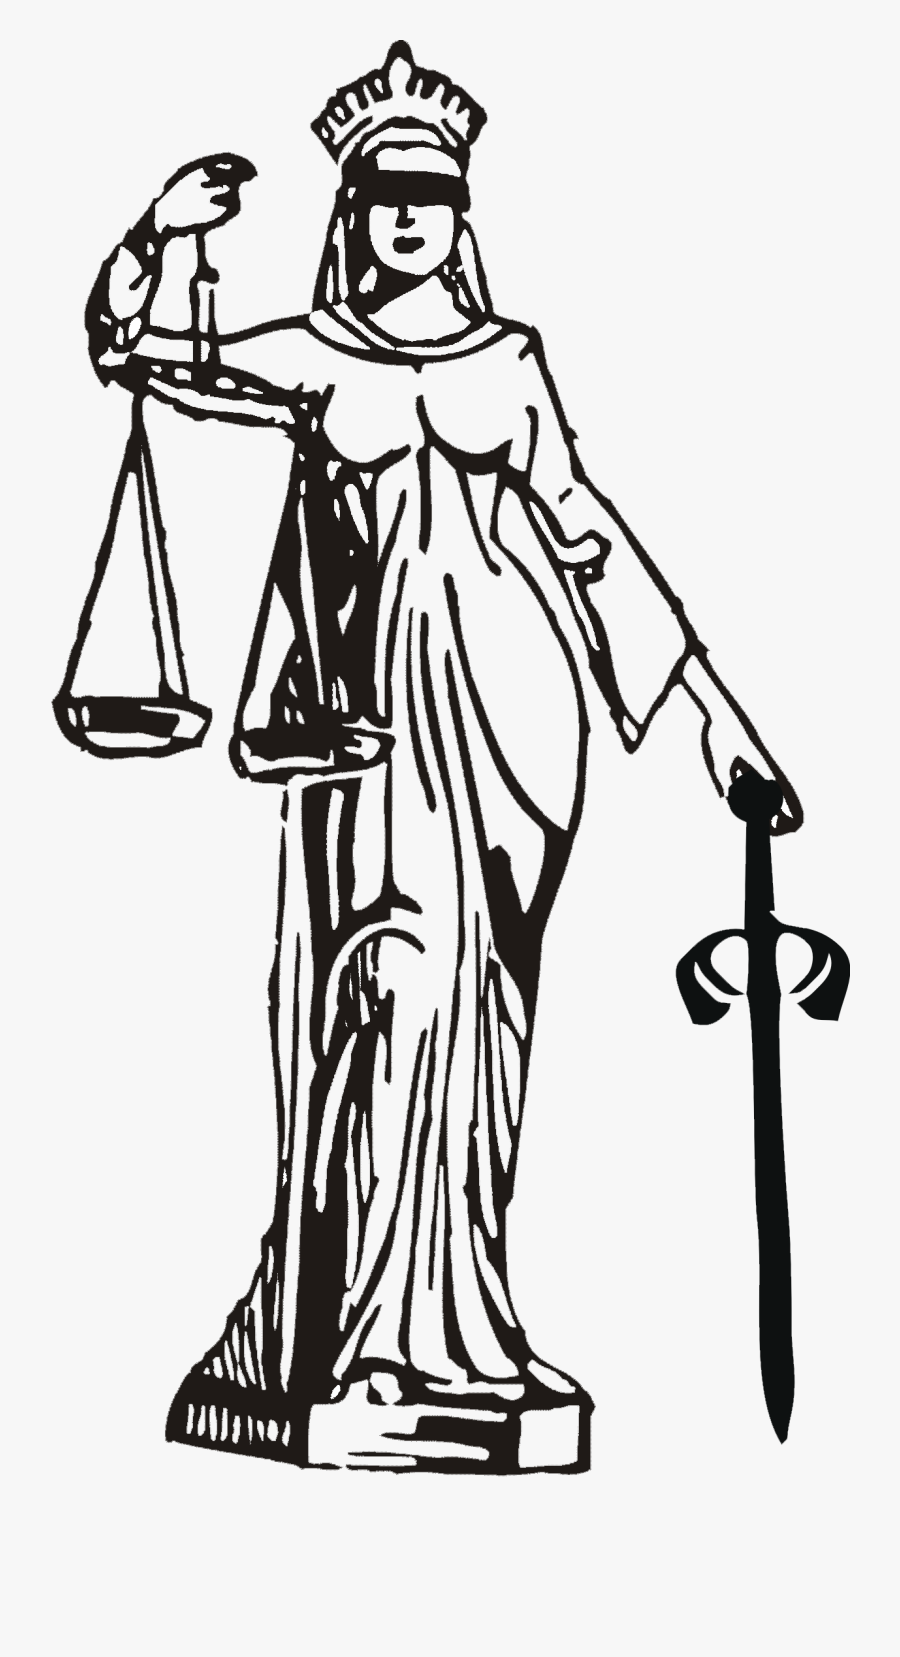 Judge Clipart Lawyer Indian - Advocate Symbol, Transparent Clipart